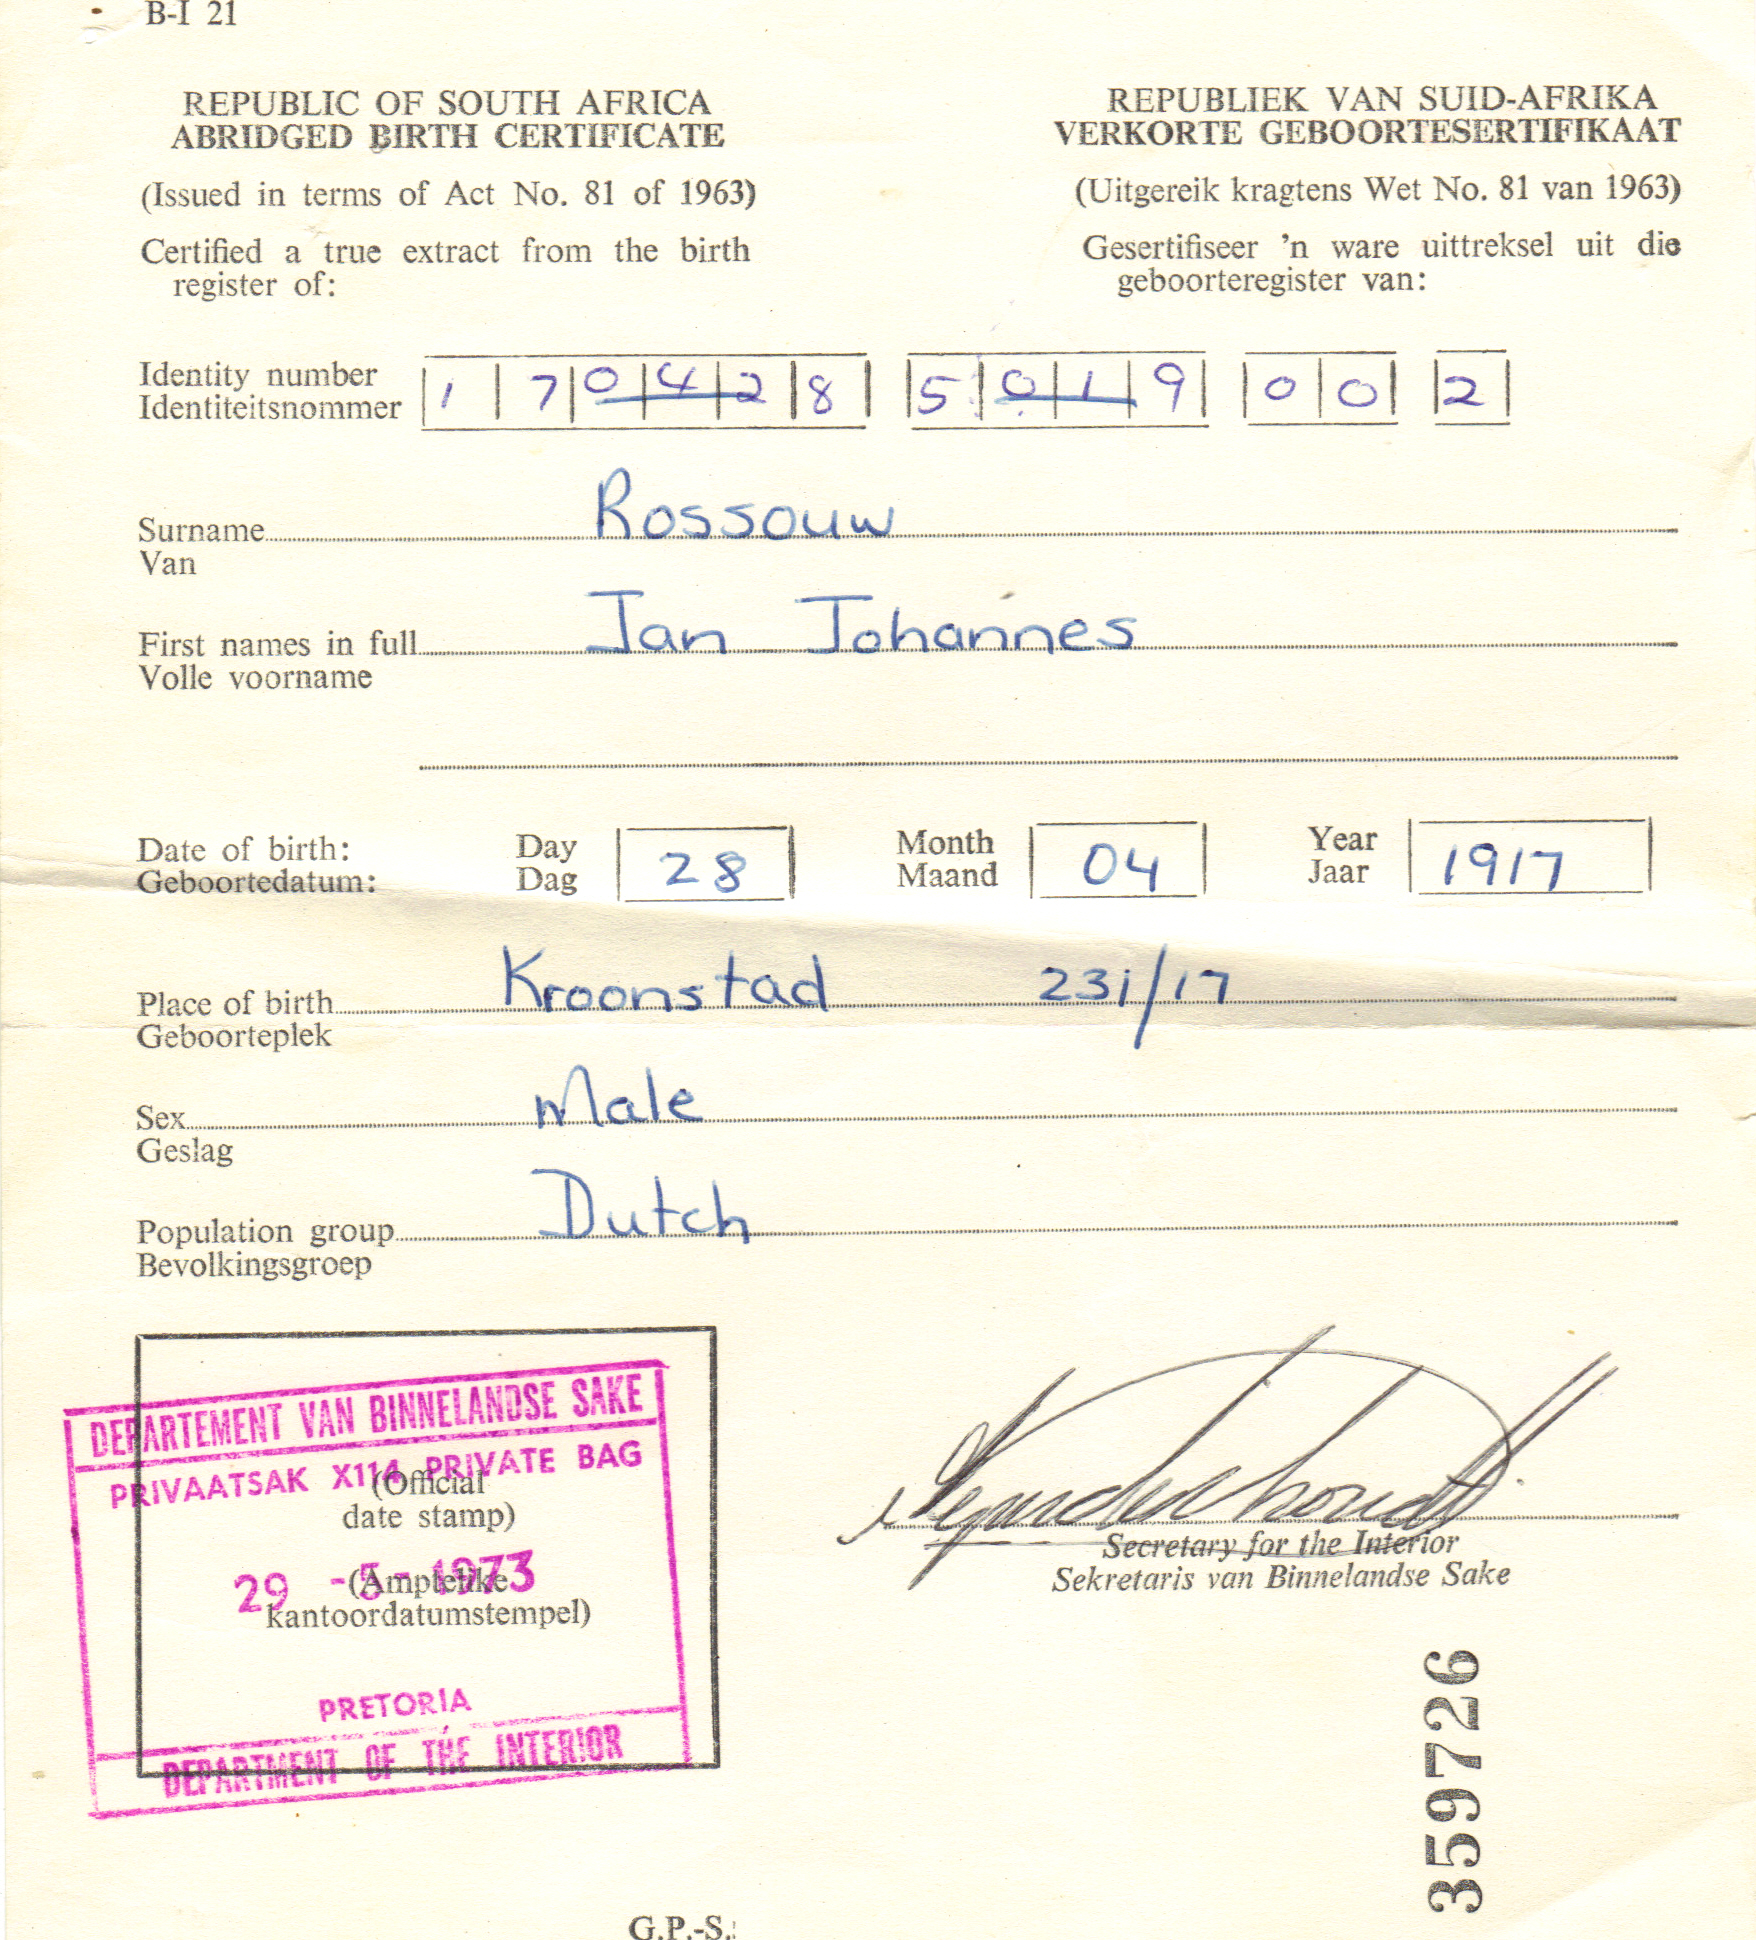 Application For Birth Certificate South Africa Best Design